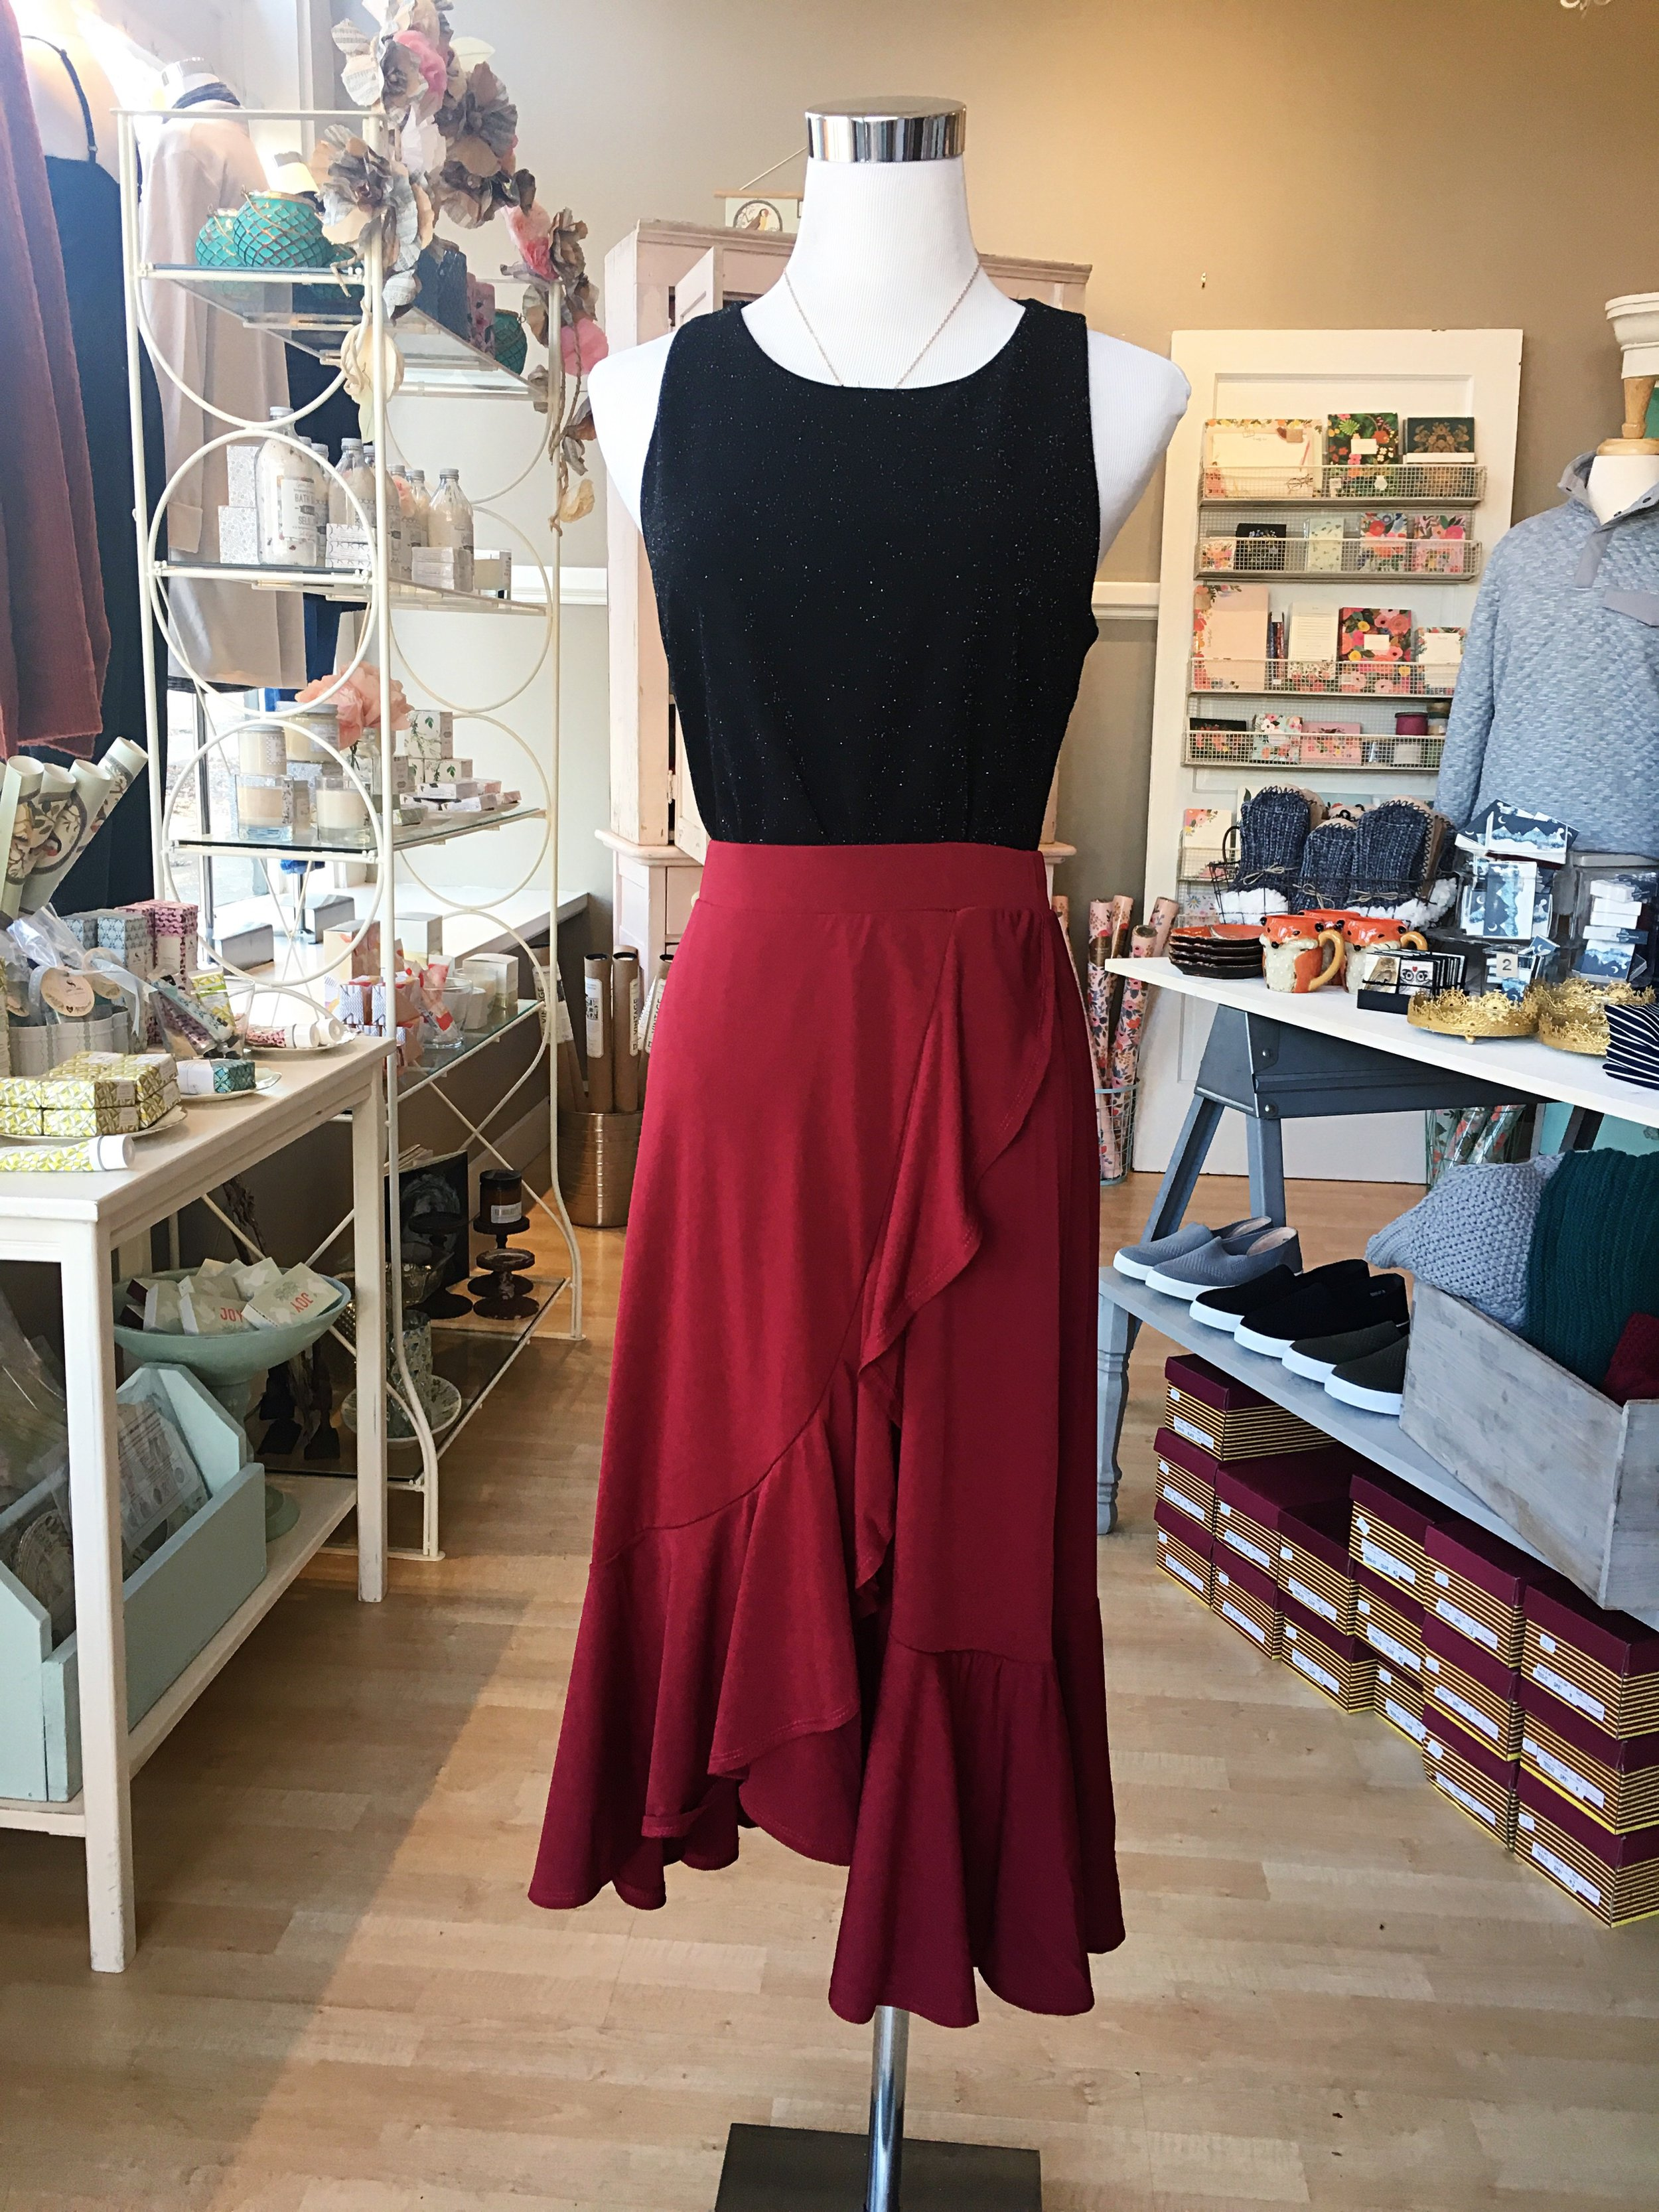 This lovely holiday skirt is flirty and fun! Dance the night away in this lovely red number.